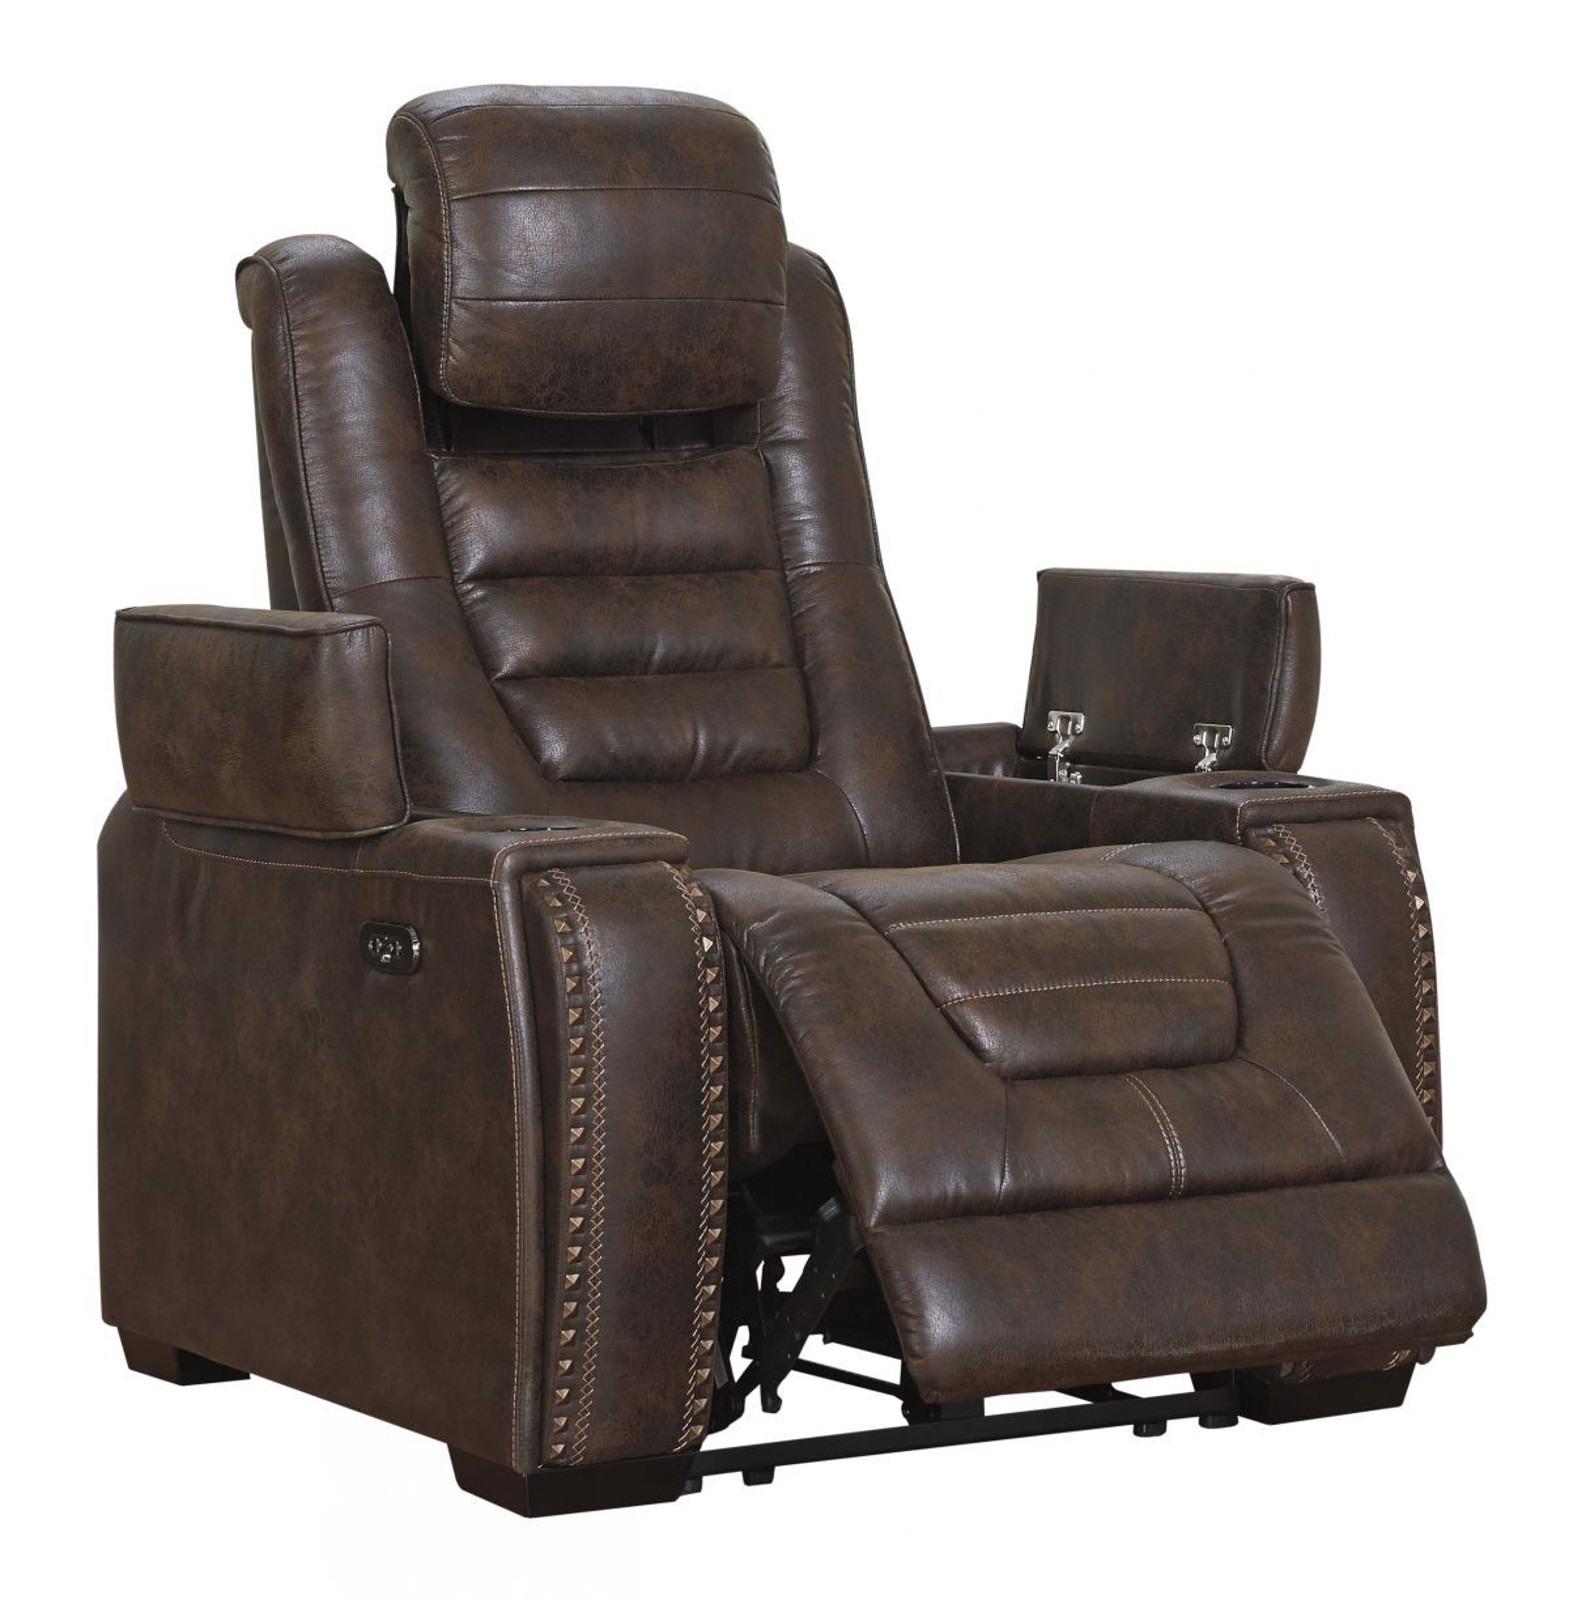 Picture of Game Zone Power Recliner